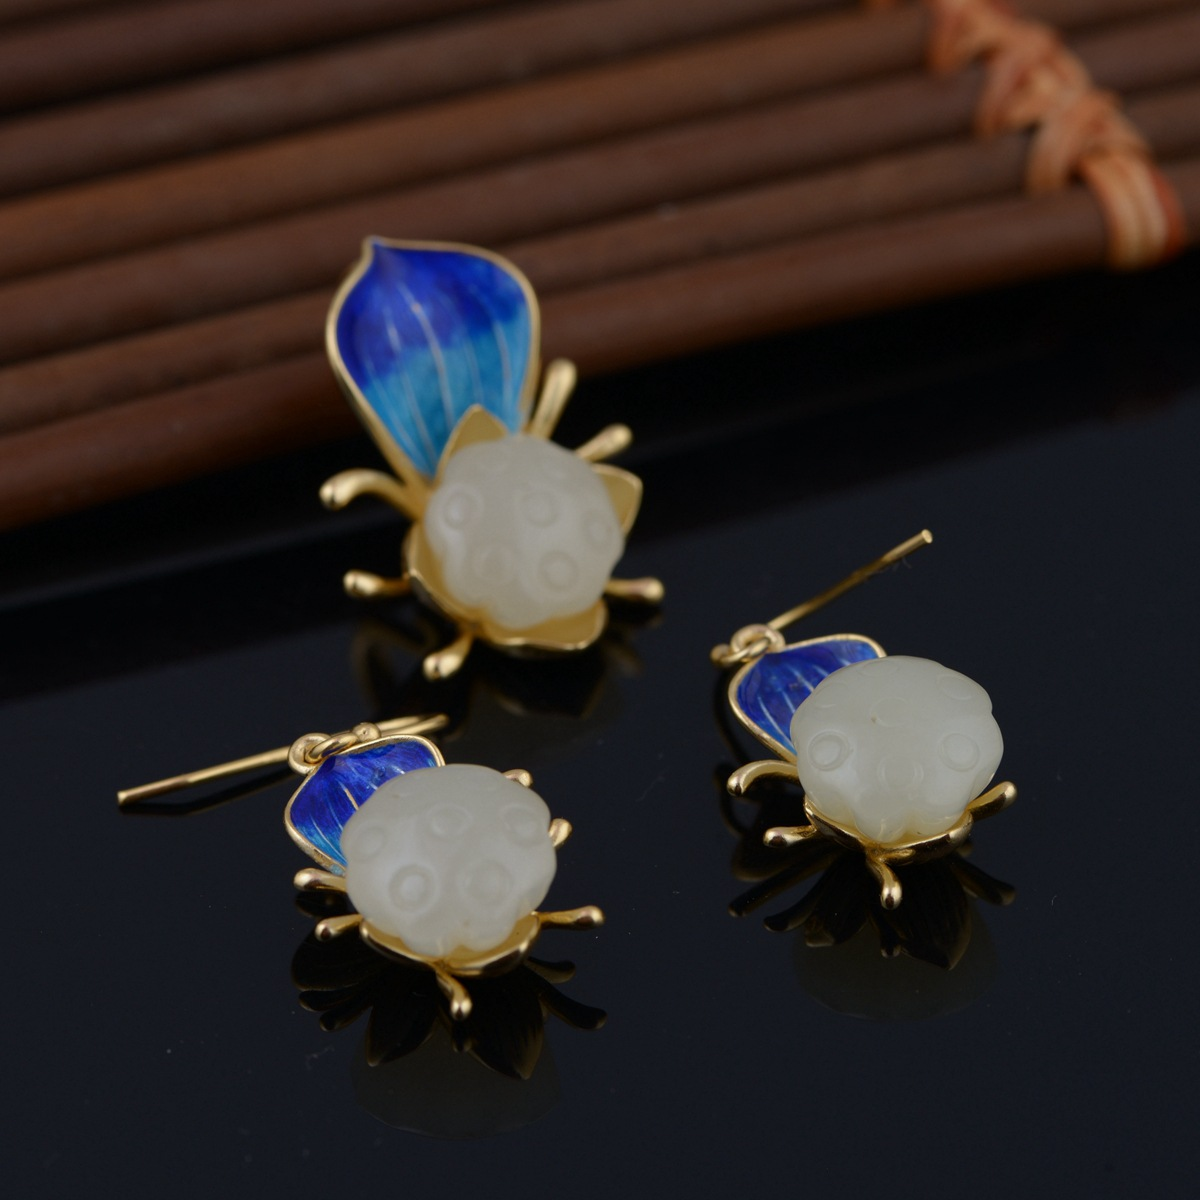 Hetian jade pendant Mana burn Thai silver wholesale S925 pure silver inlay earrings Delicate female money gifts